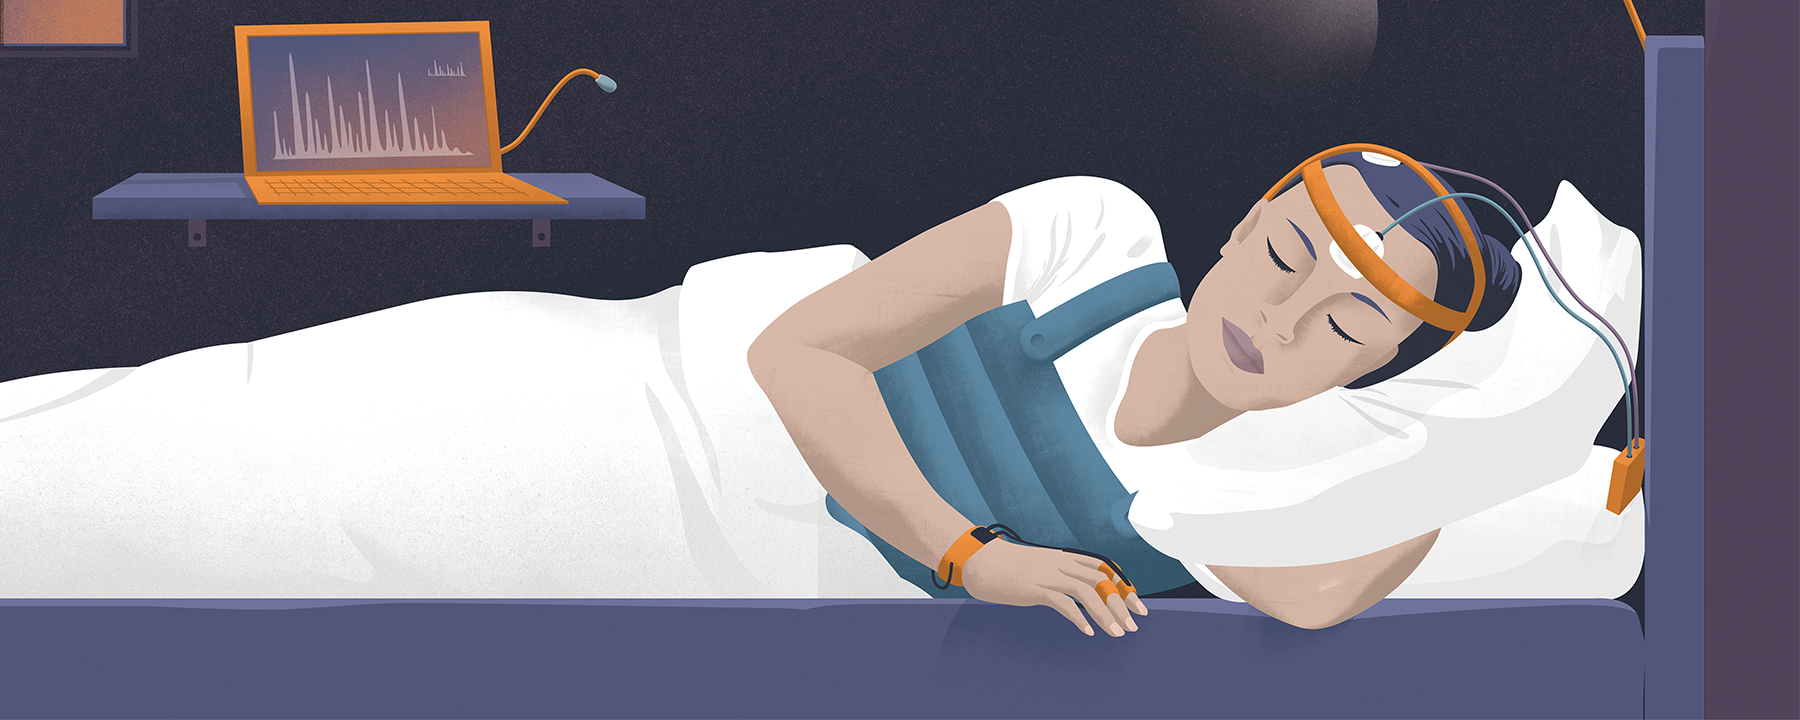 Infographic: The Technology Scientists Use to Engineer Dreams